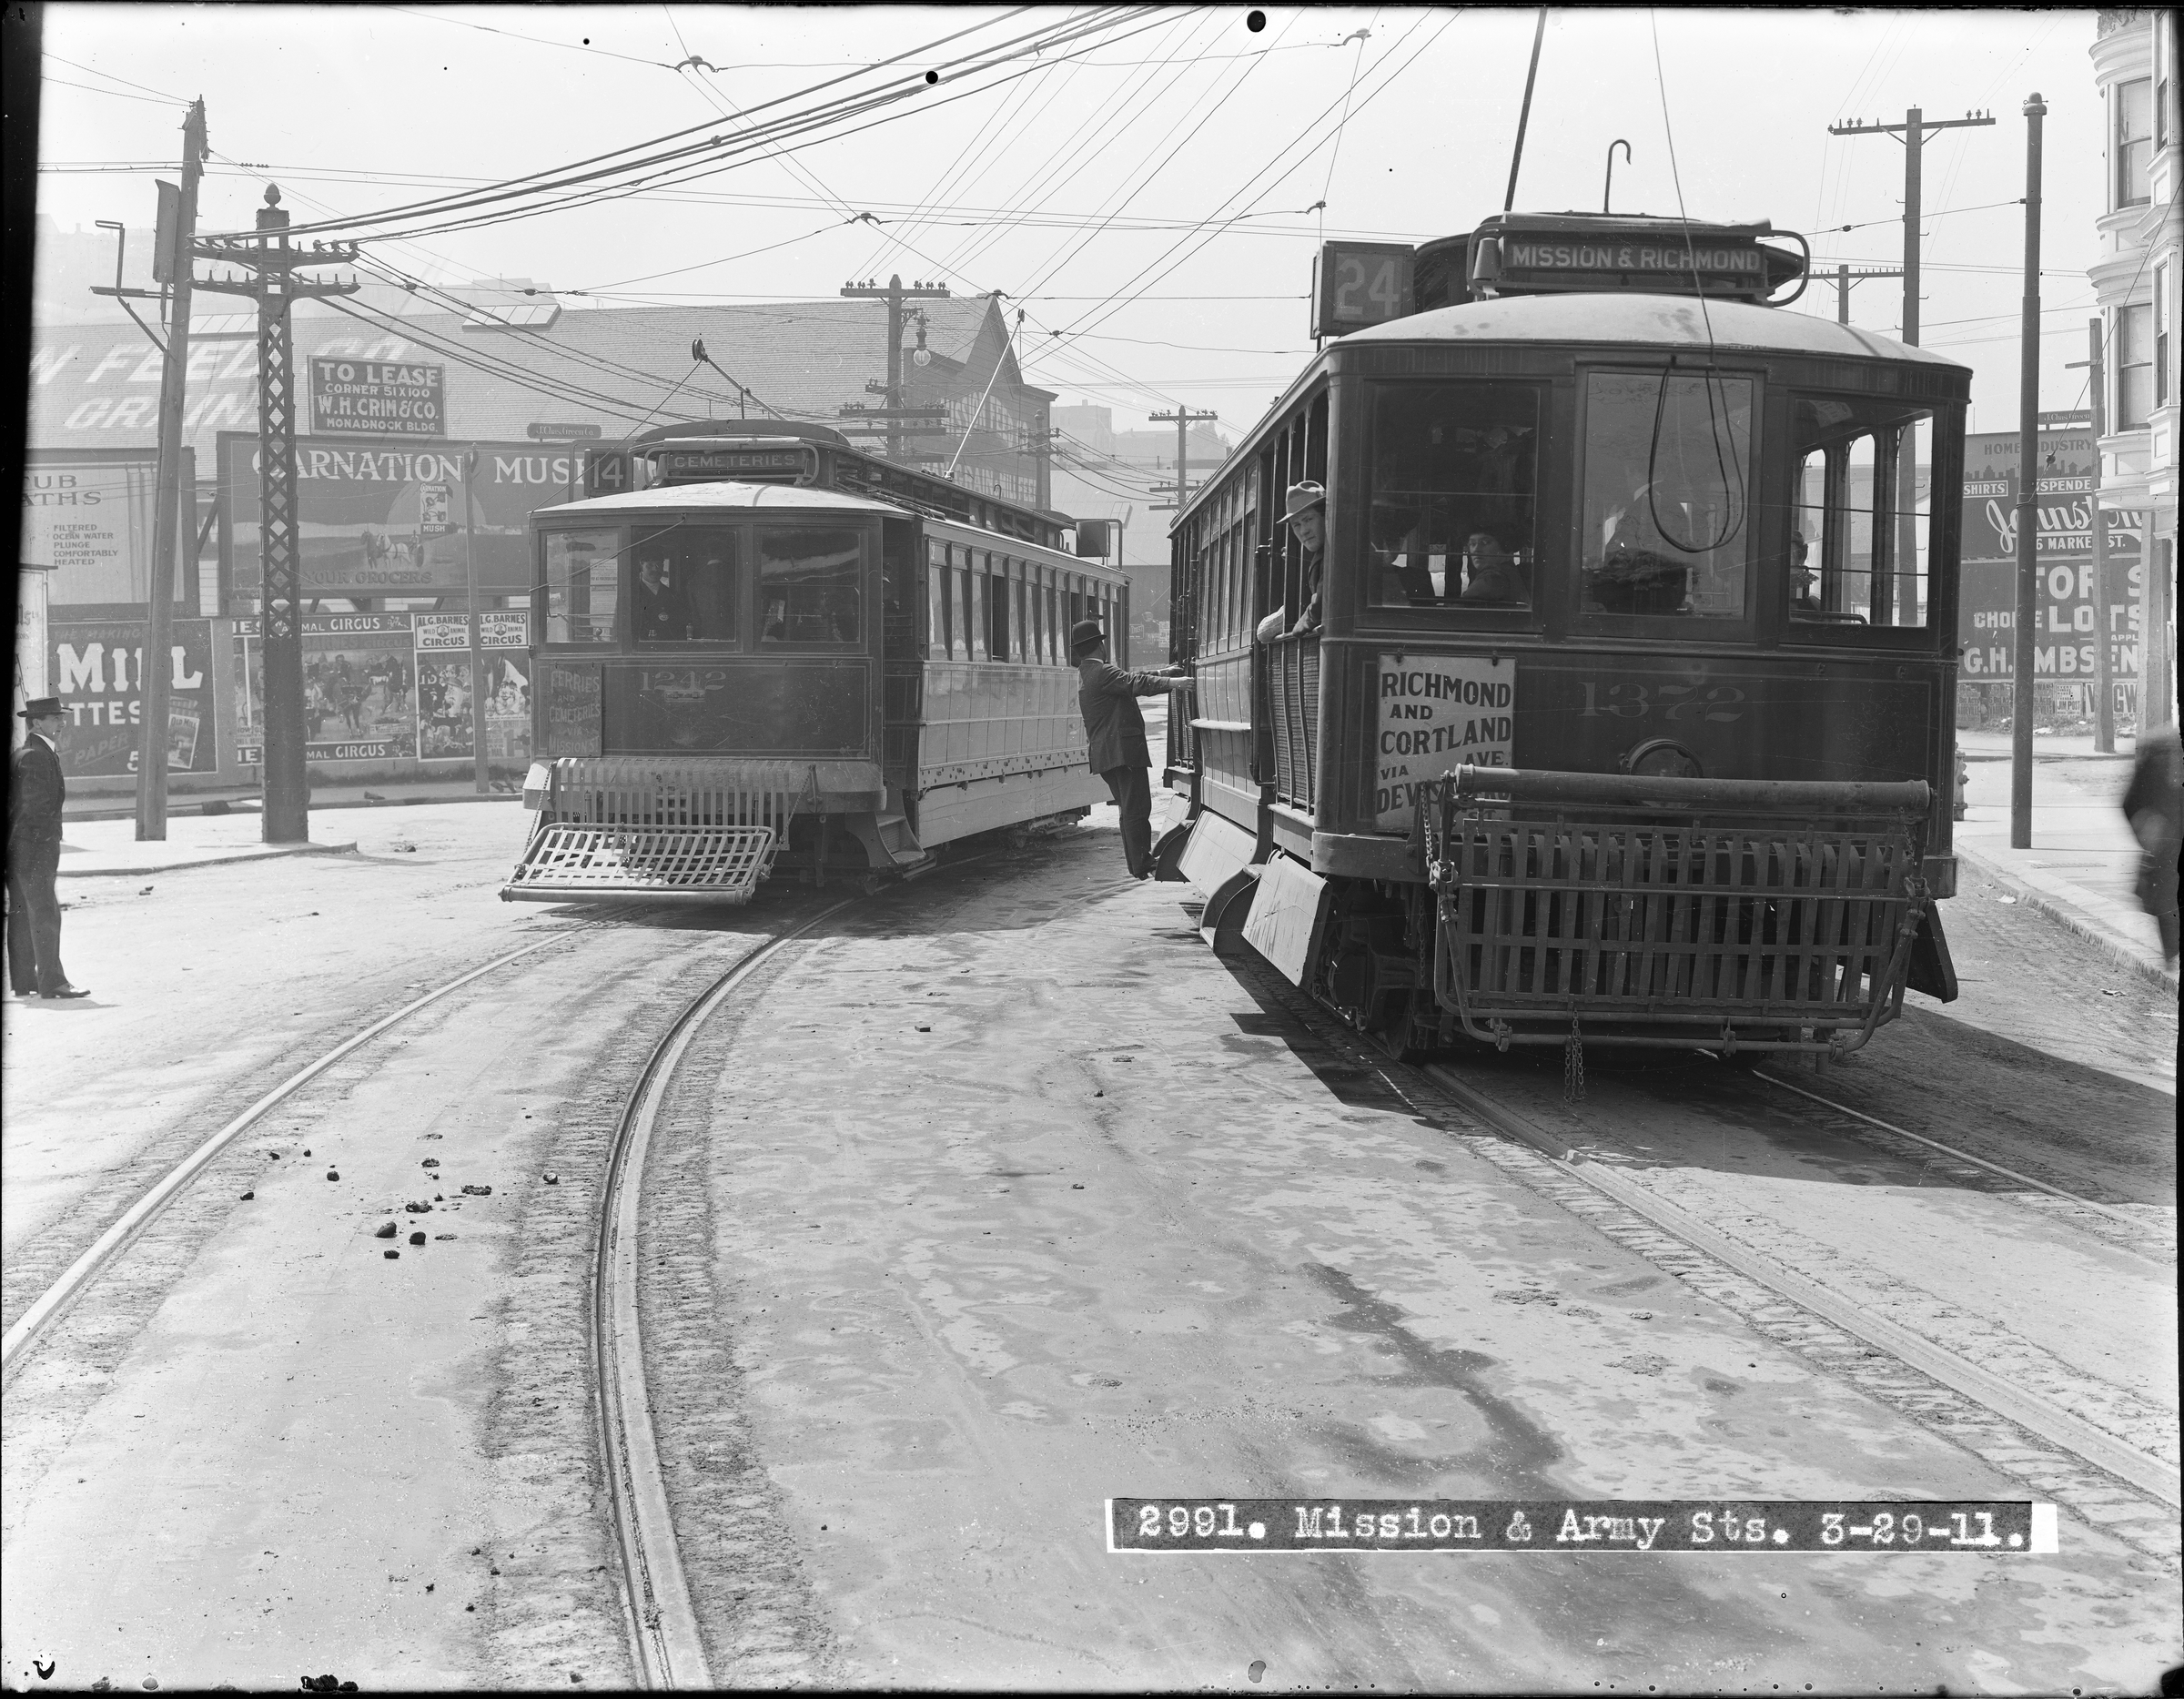 Streetcars 1242 and 1372 at Mission and Army Streets | March 29, 1911